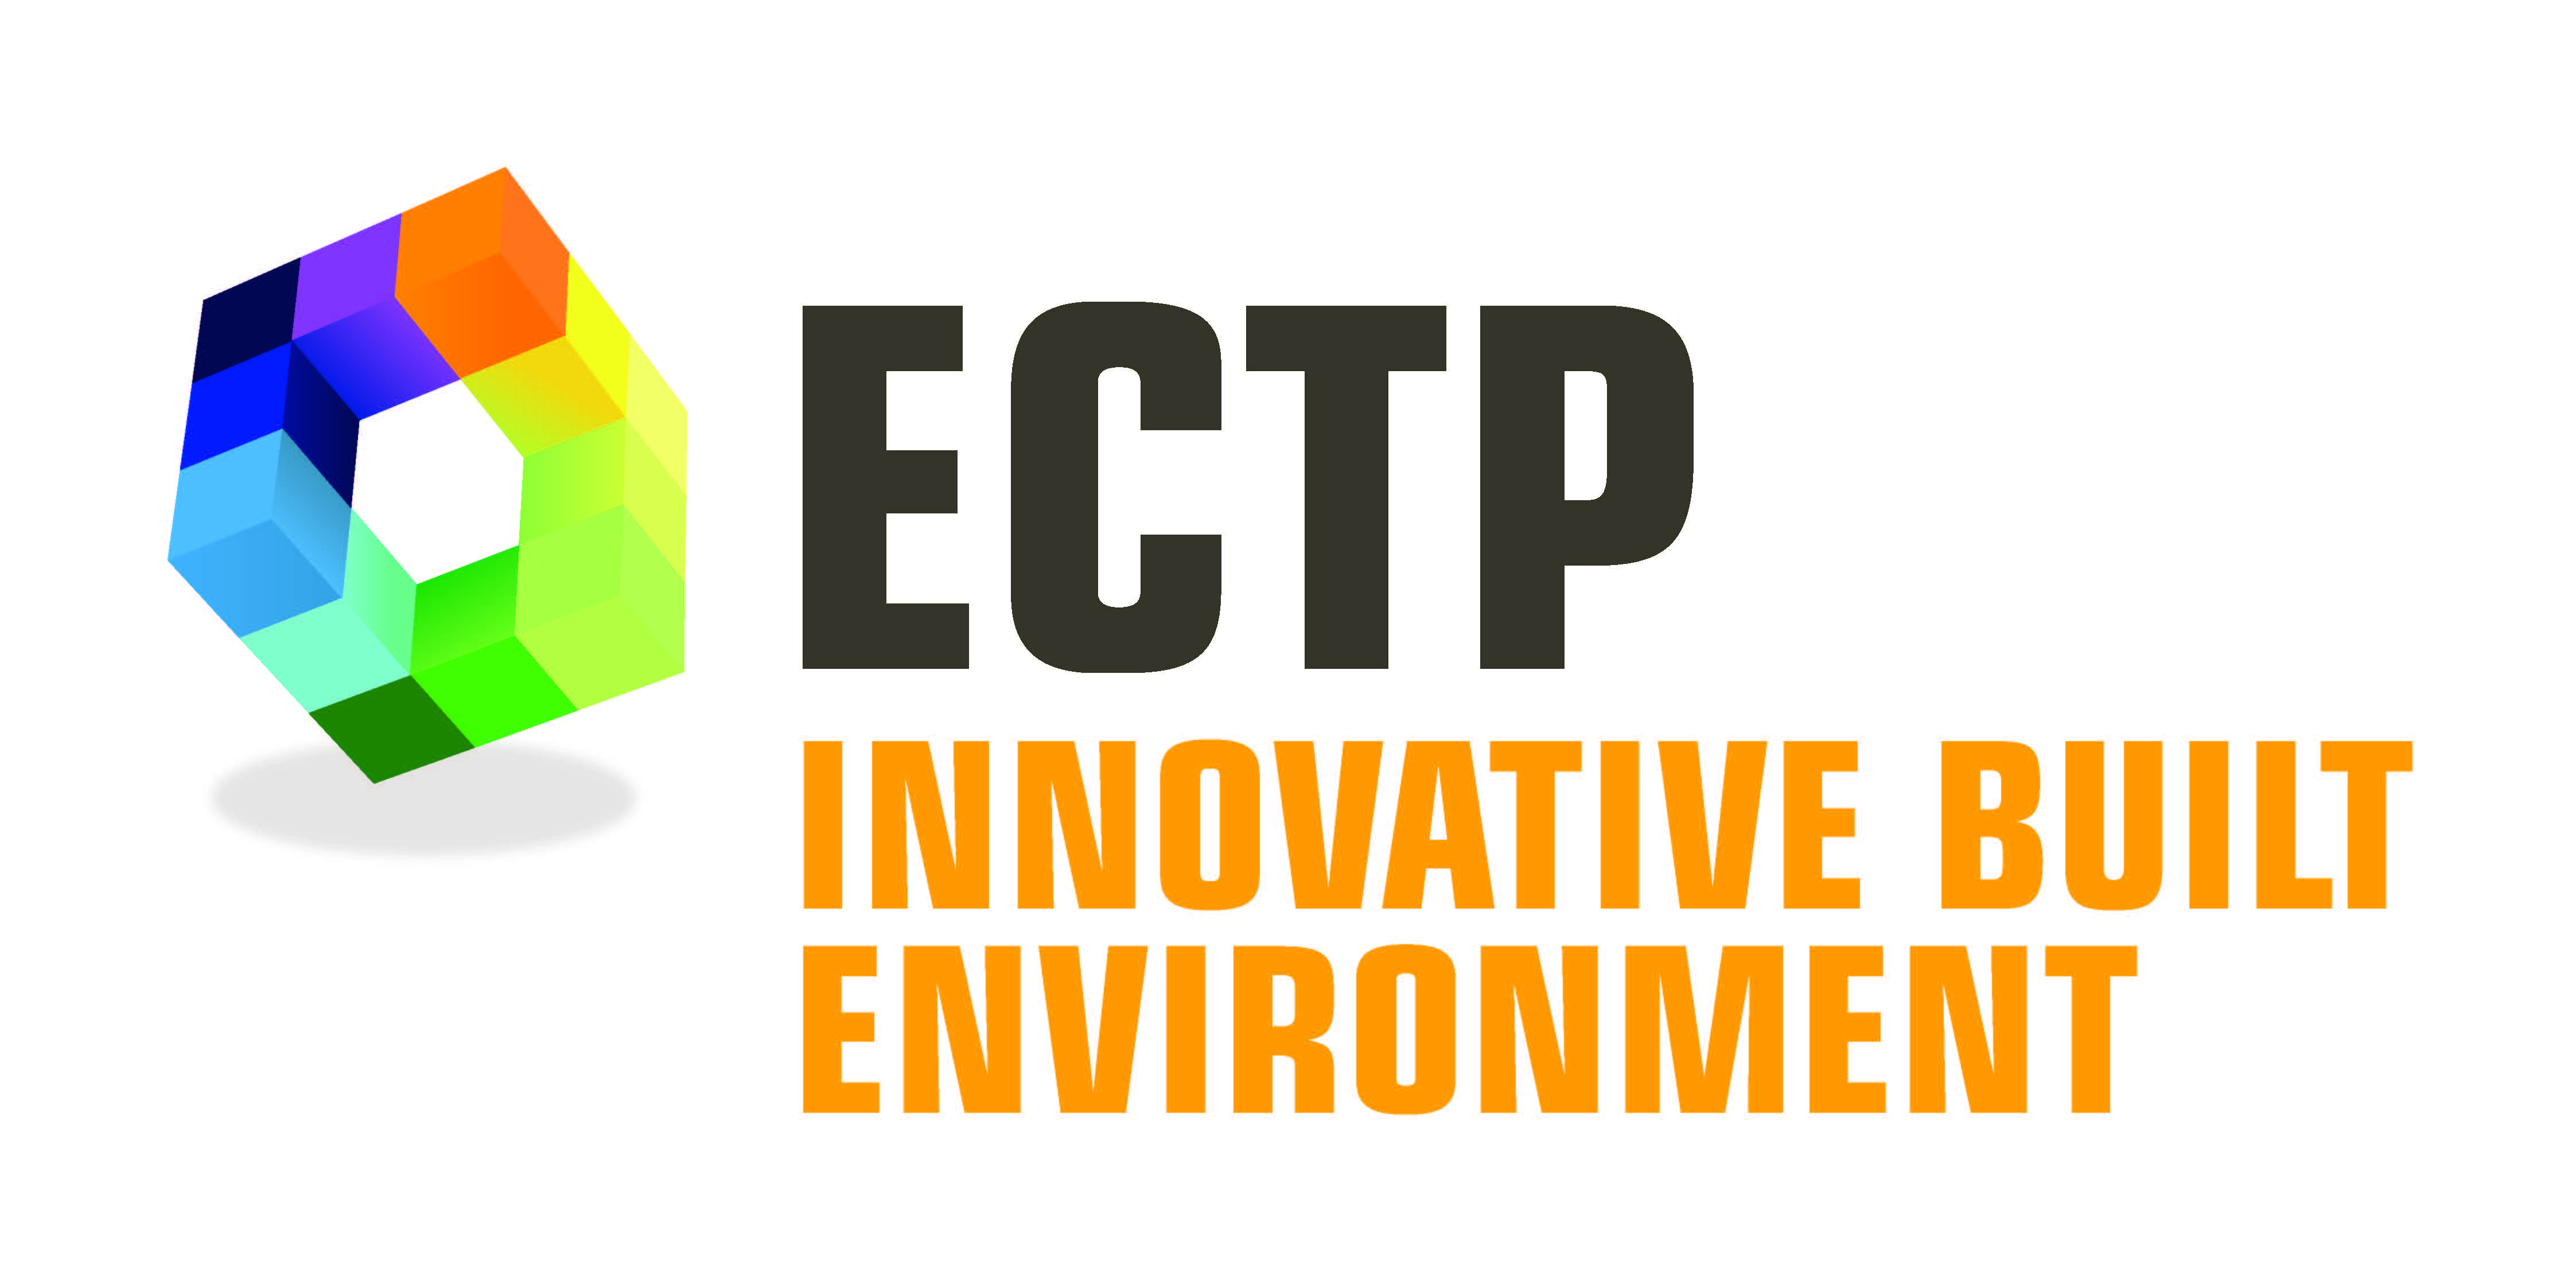 ECTP Conference